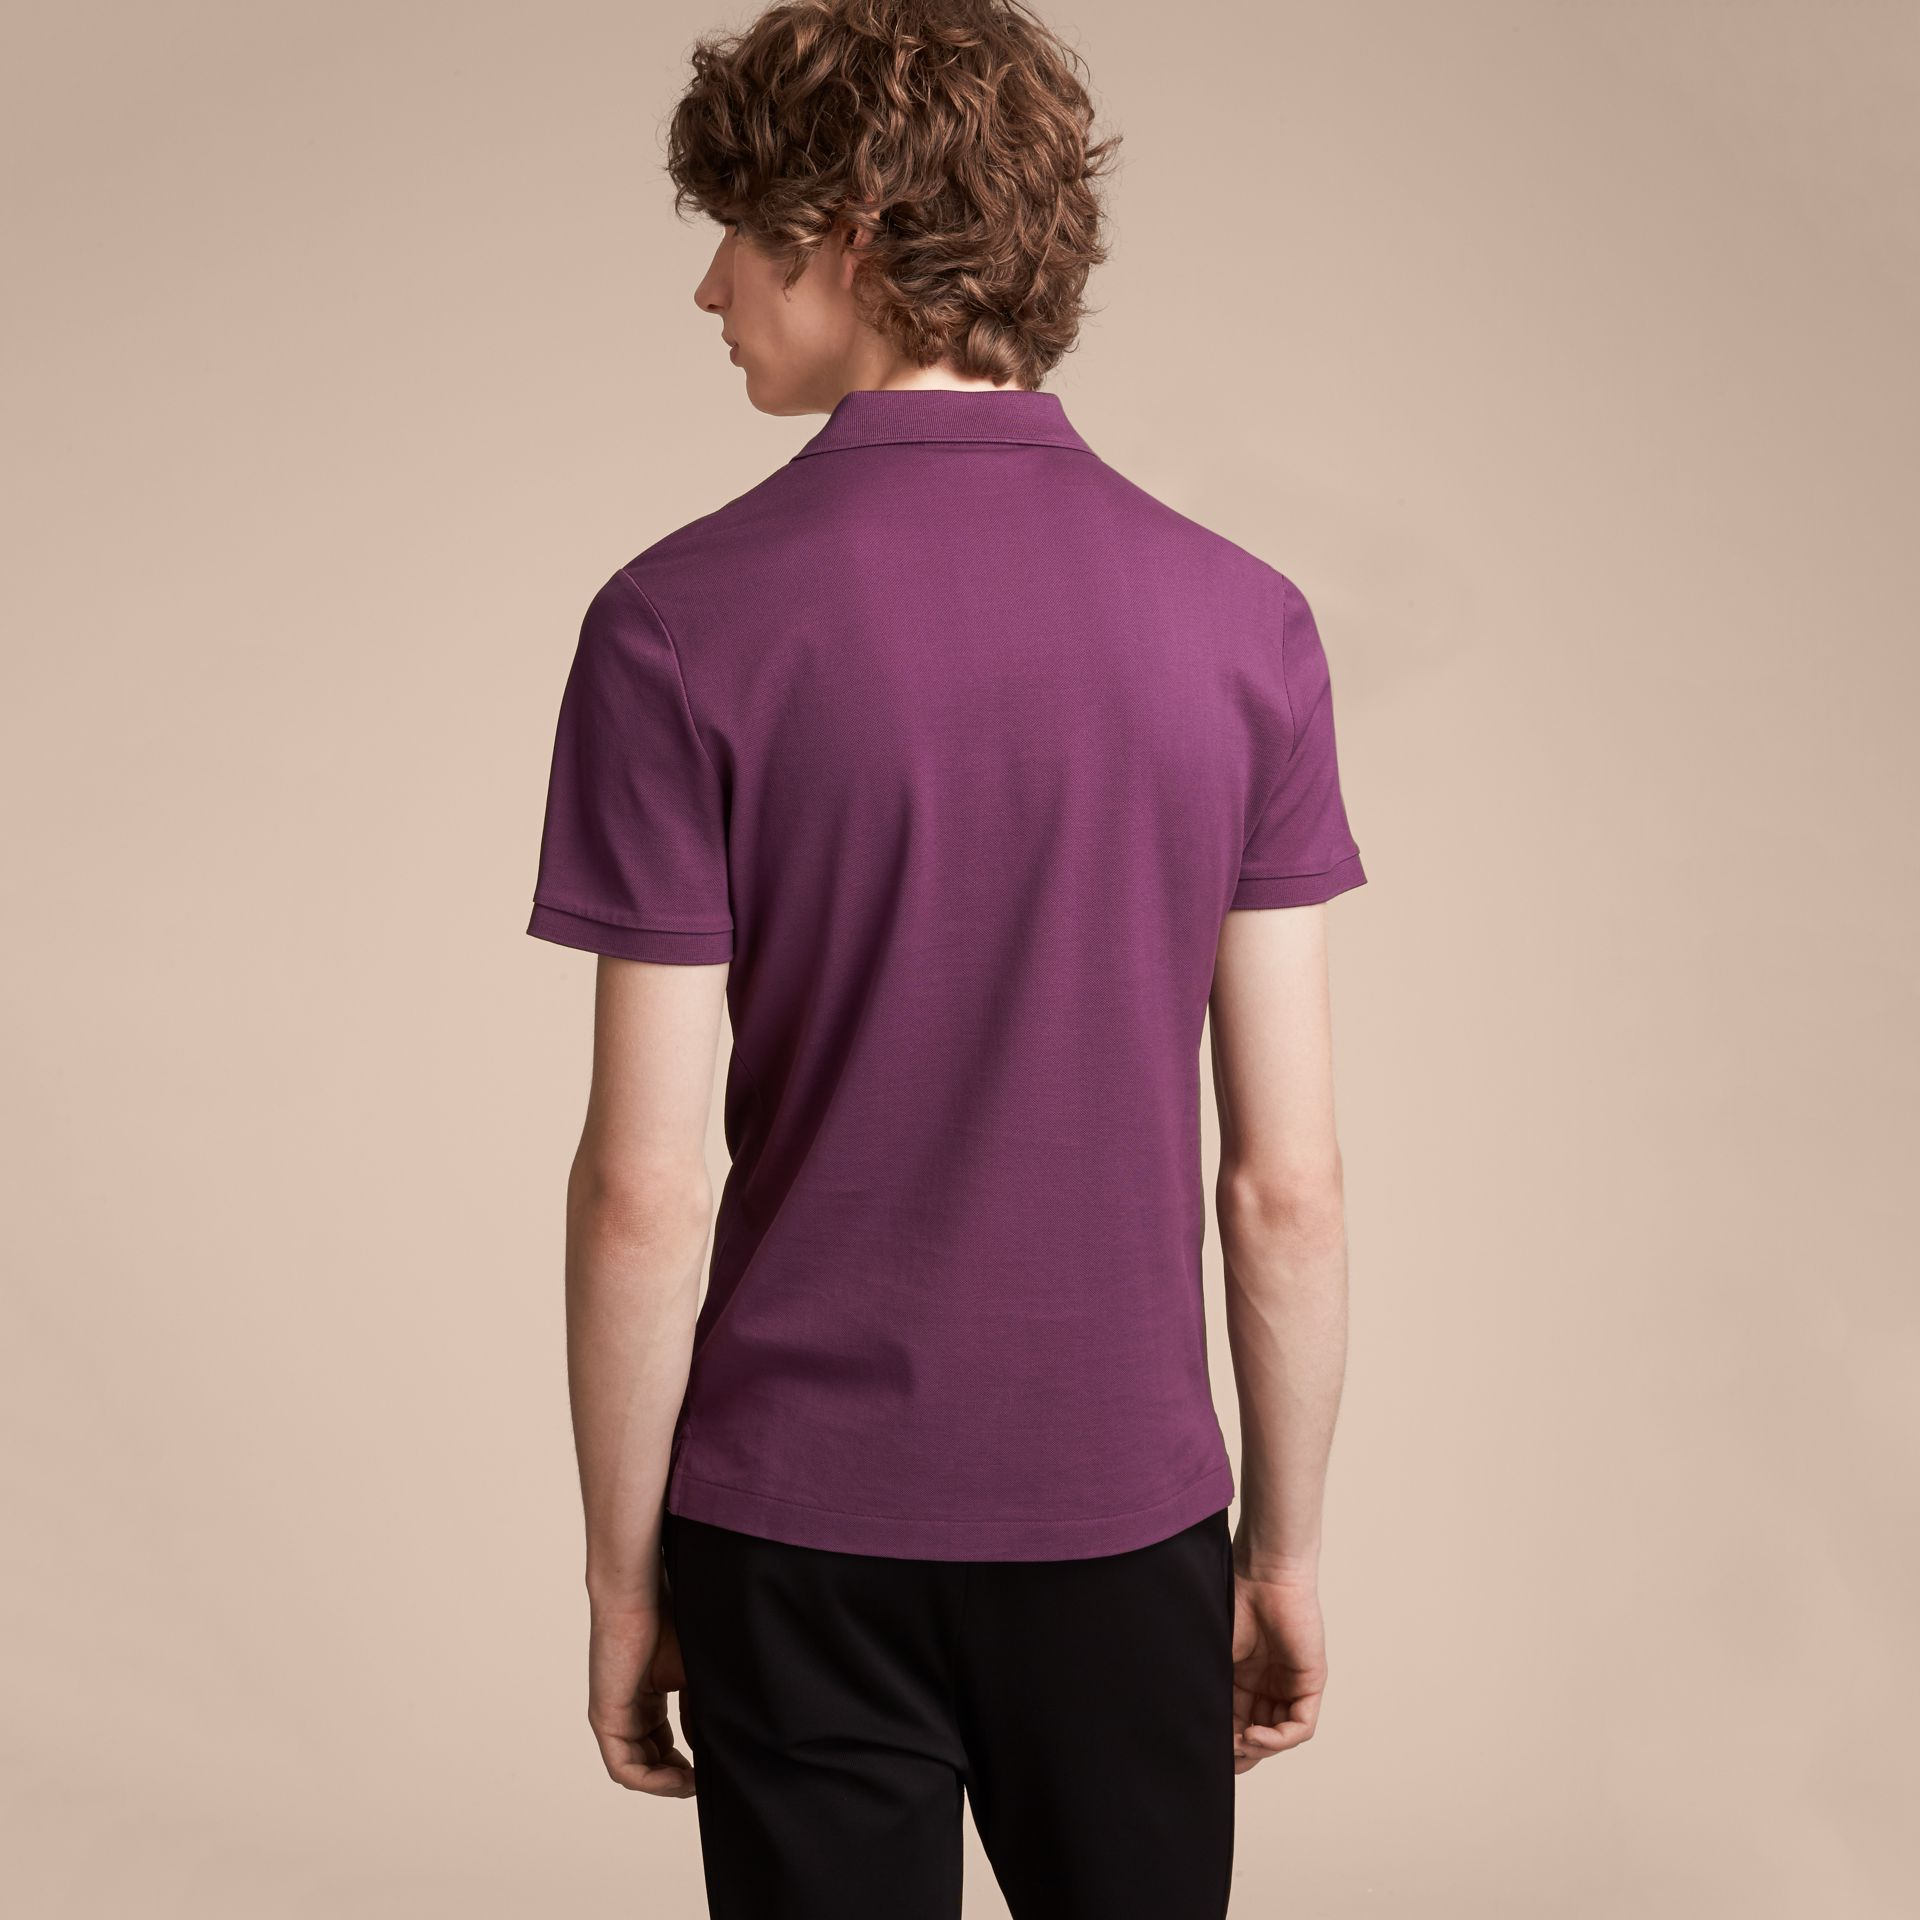 Cotton Piqué Polo Shirt in Heather - Men | Burberry Hong Kong - gallery image 3